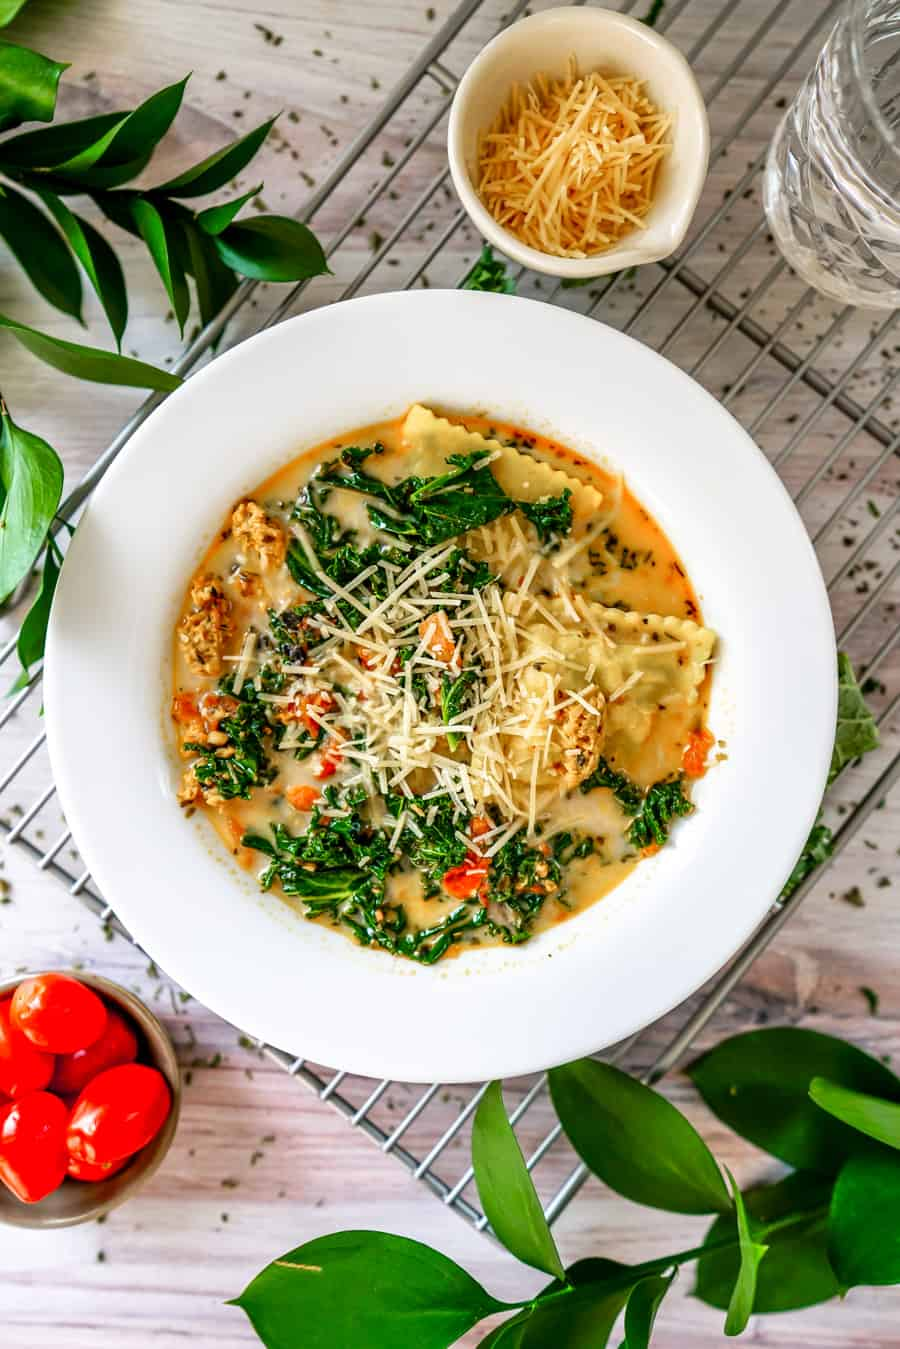 This Instant Pot Creamy Ravioli Soup receives universal raves - and for good reason - it's hearty, flavorful, versatile and incredibly easy to whip up! This Instant Pot Creamy Ravioli Soup can be made to be vegan and keto friendly, too!Try it today and let us know what you think!